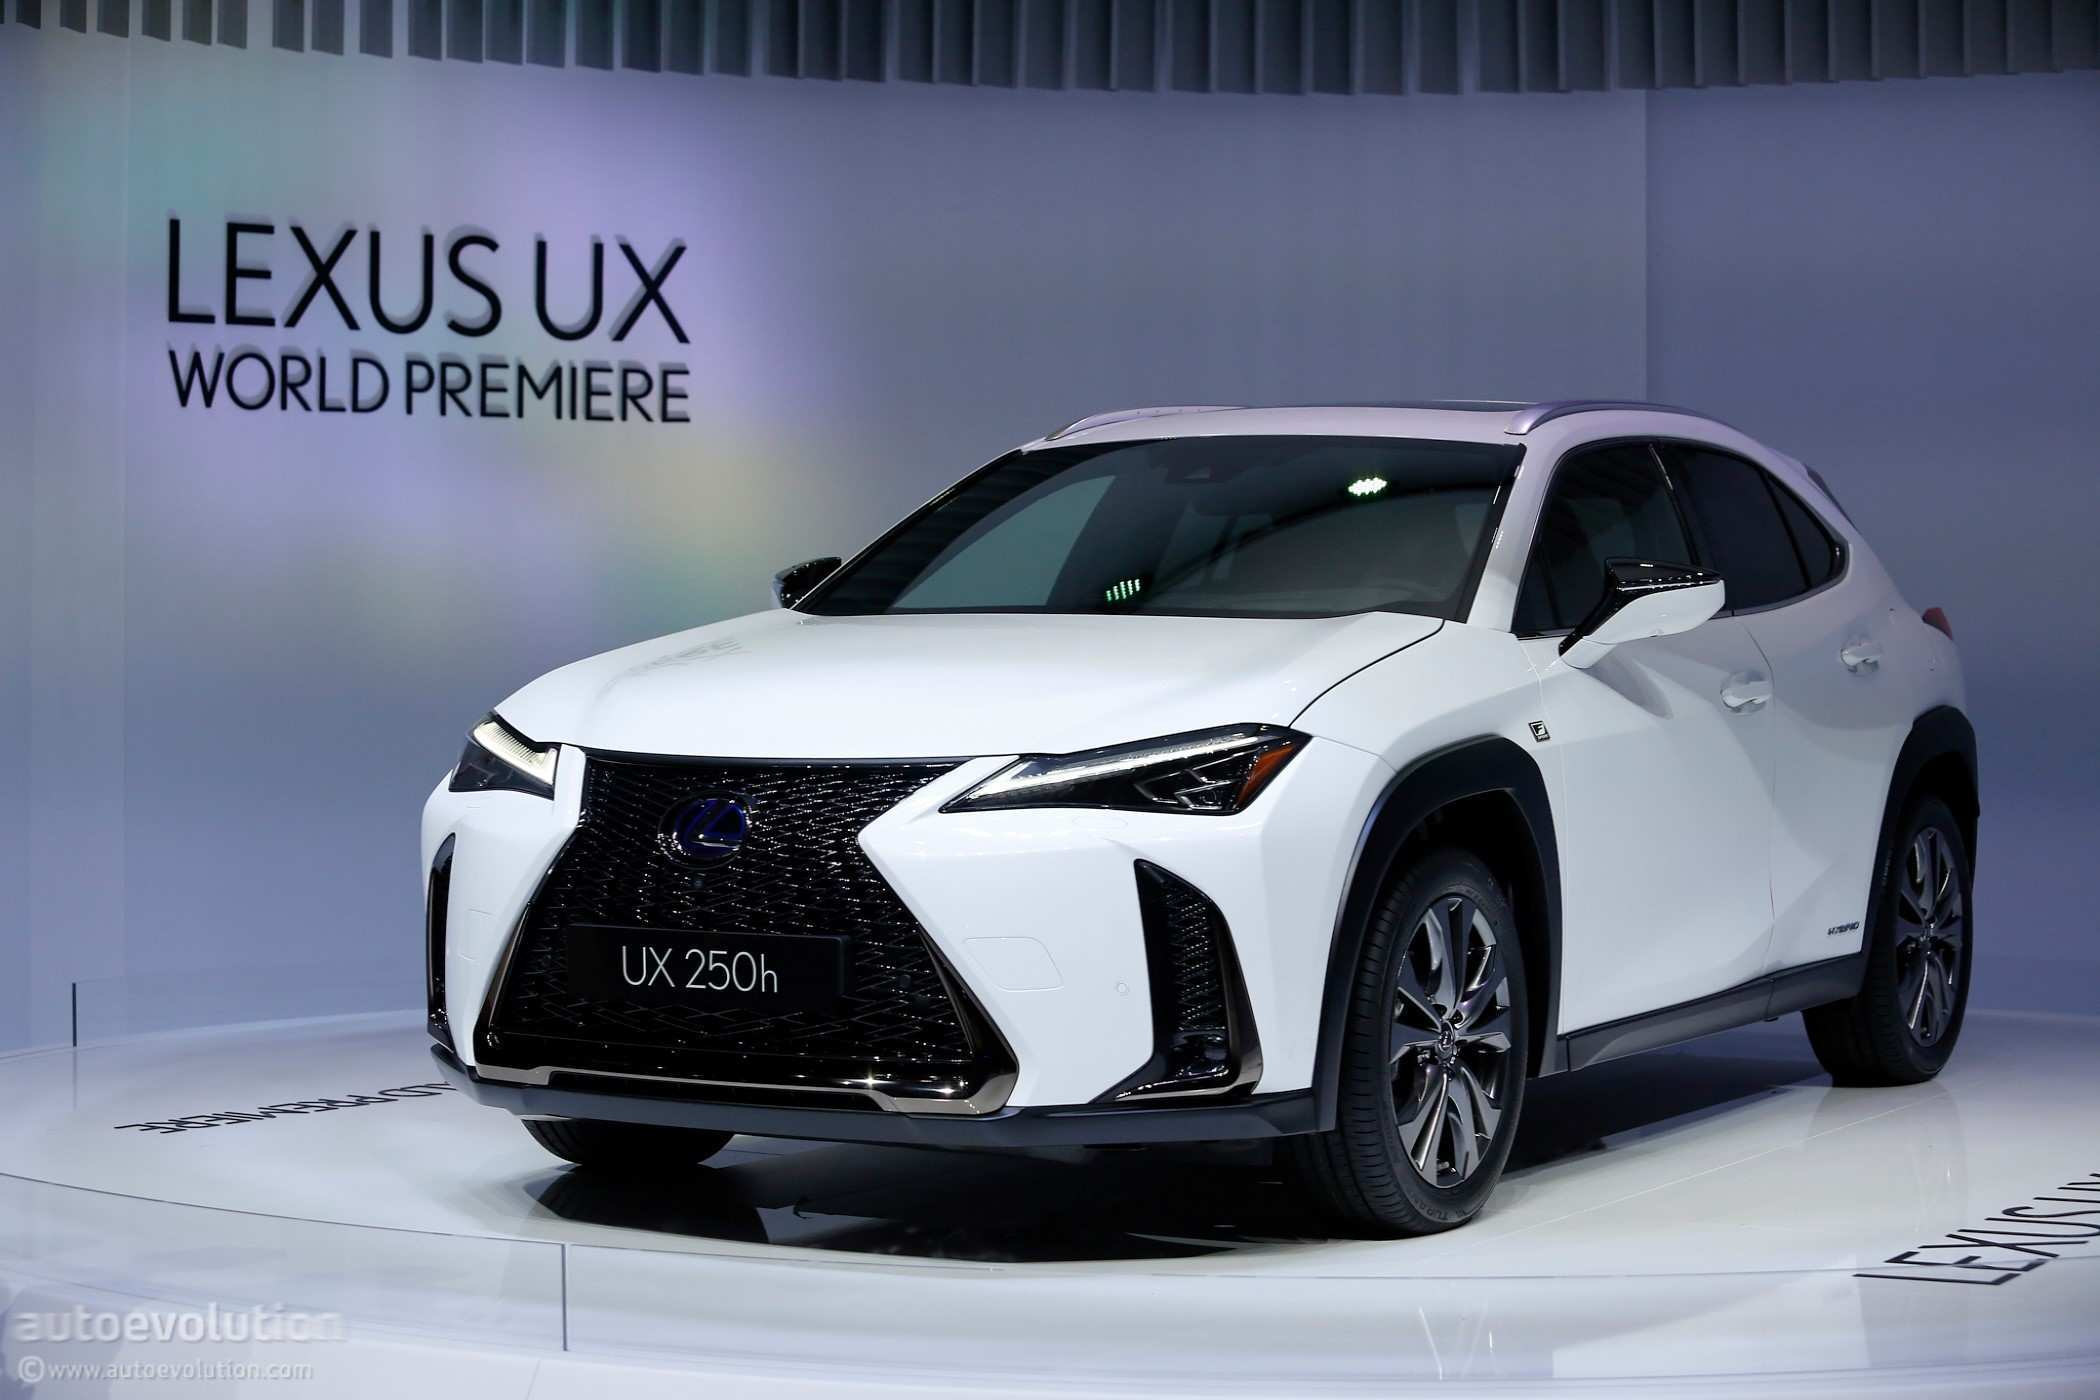 39 All New 2020 Lexus CT 200h Model by 2020 Lexus CT 200h